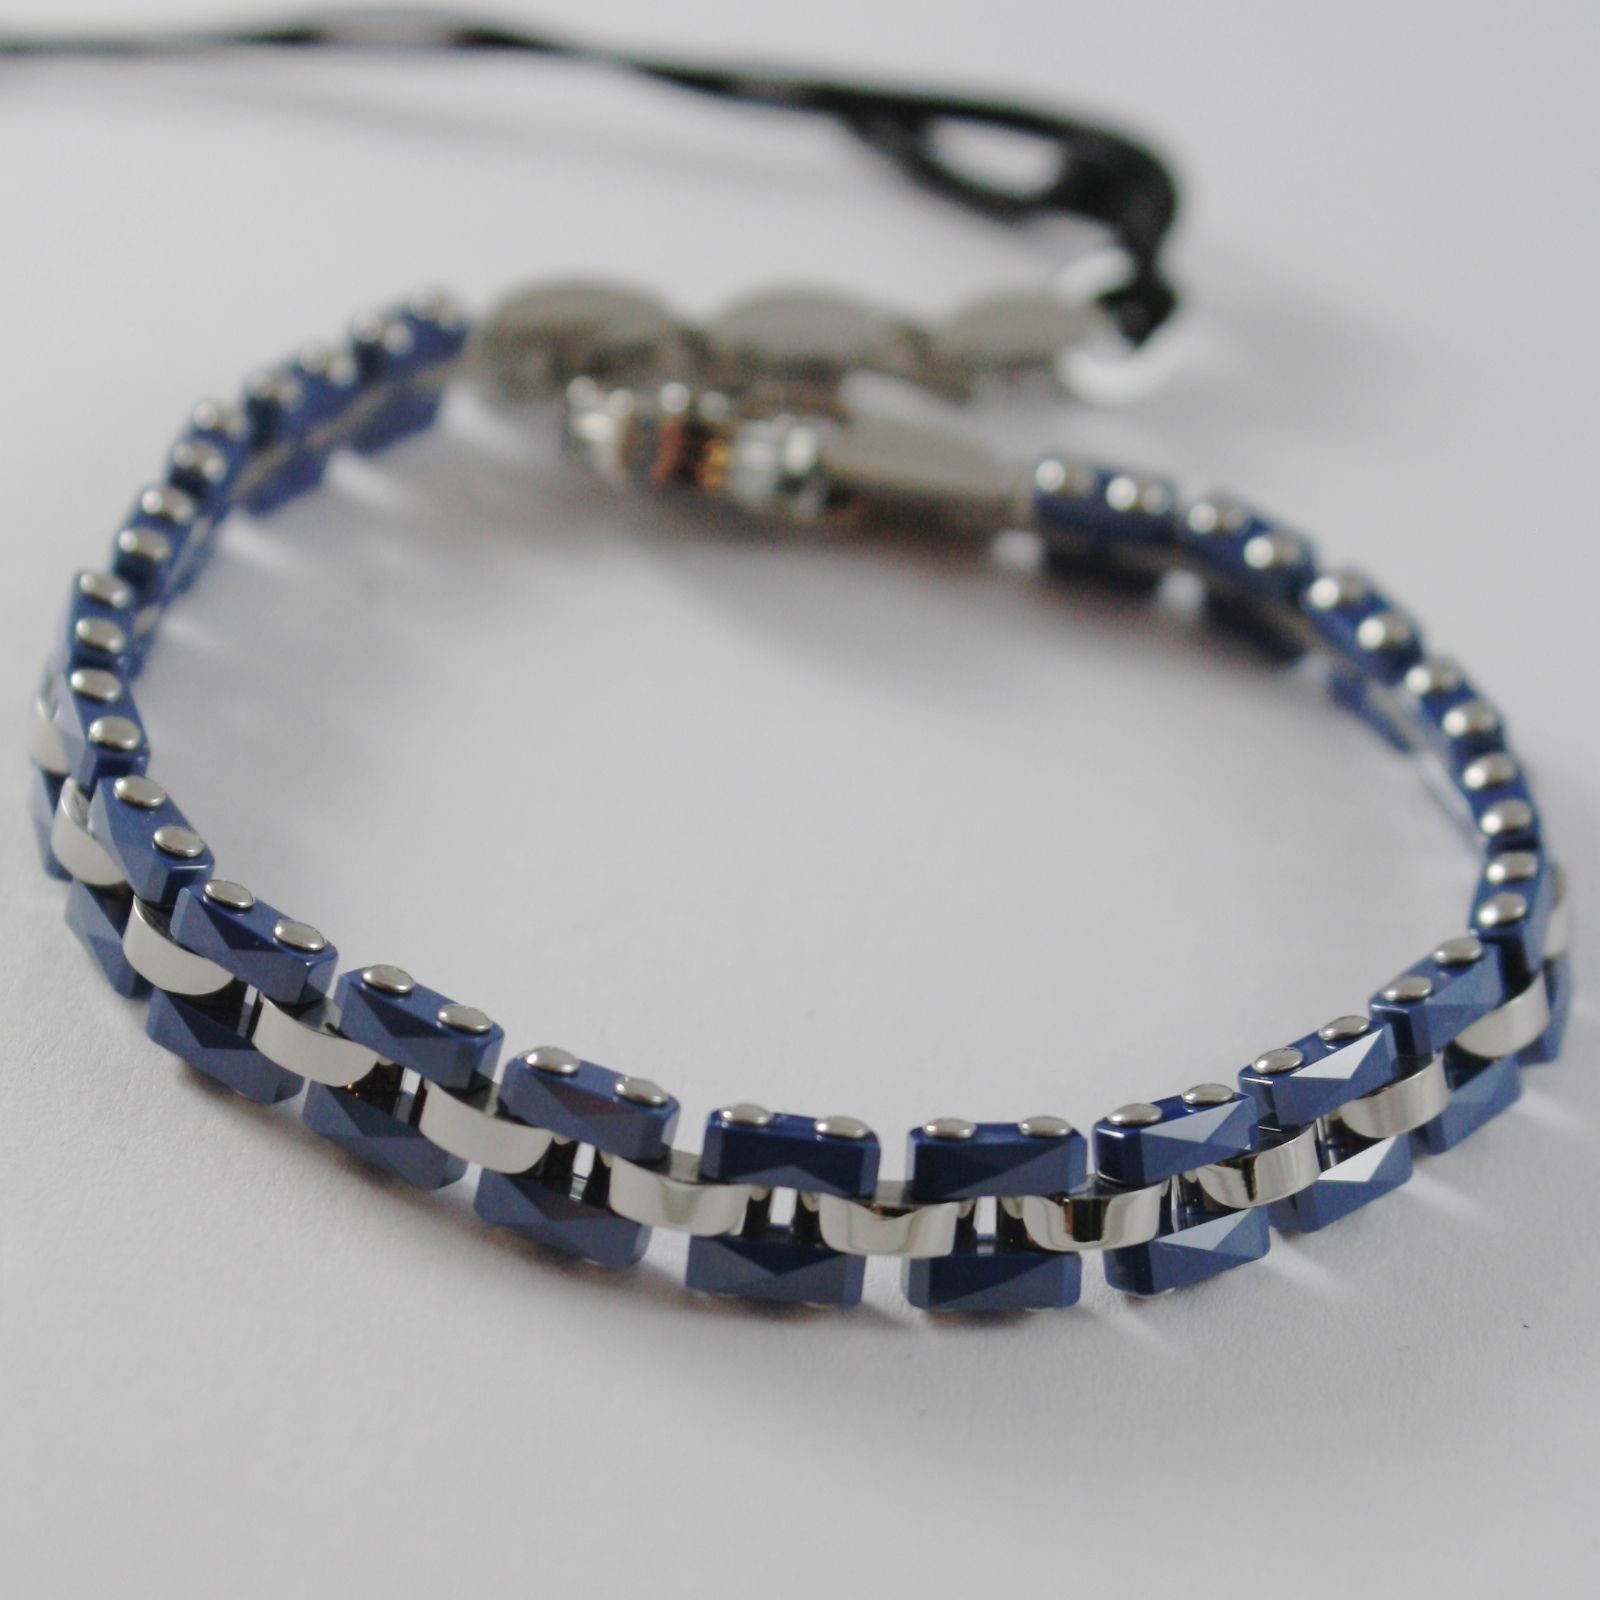 STEEL BRACELET WITH CERAMICS BLUE CESARE PACIOTTI 4US ARTICLE 4UBR1416